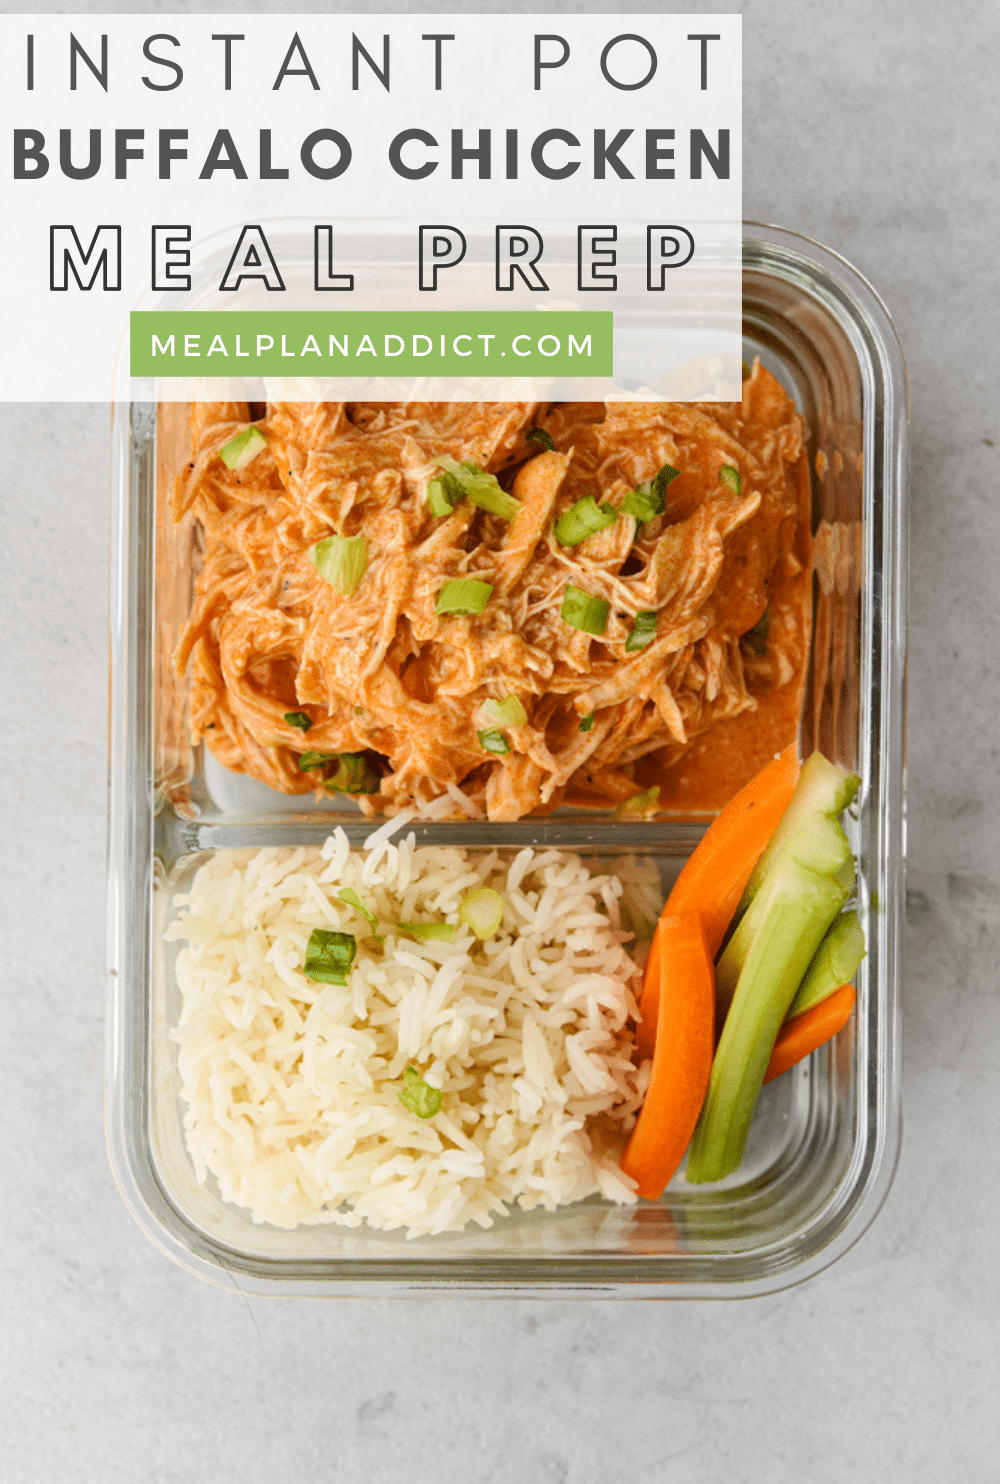 How to Meal Prep Instant Pot Buffalo Chicken | Meal Plan Addict